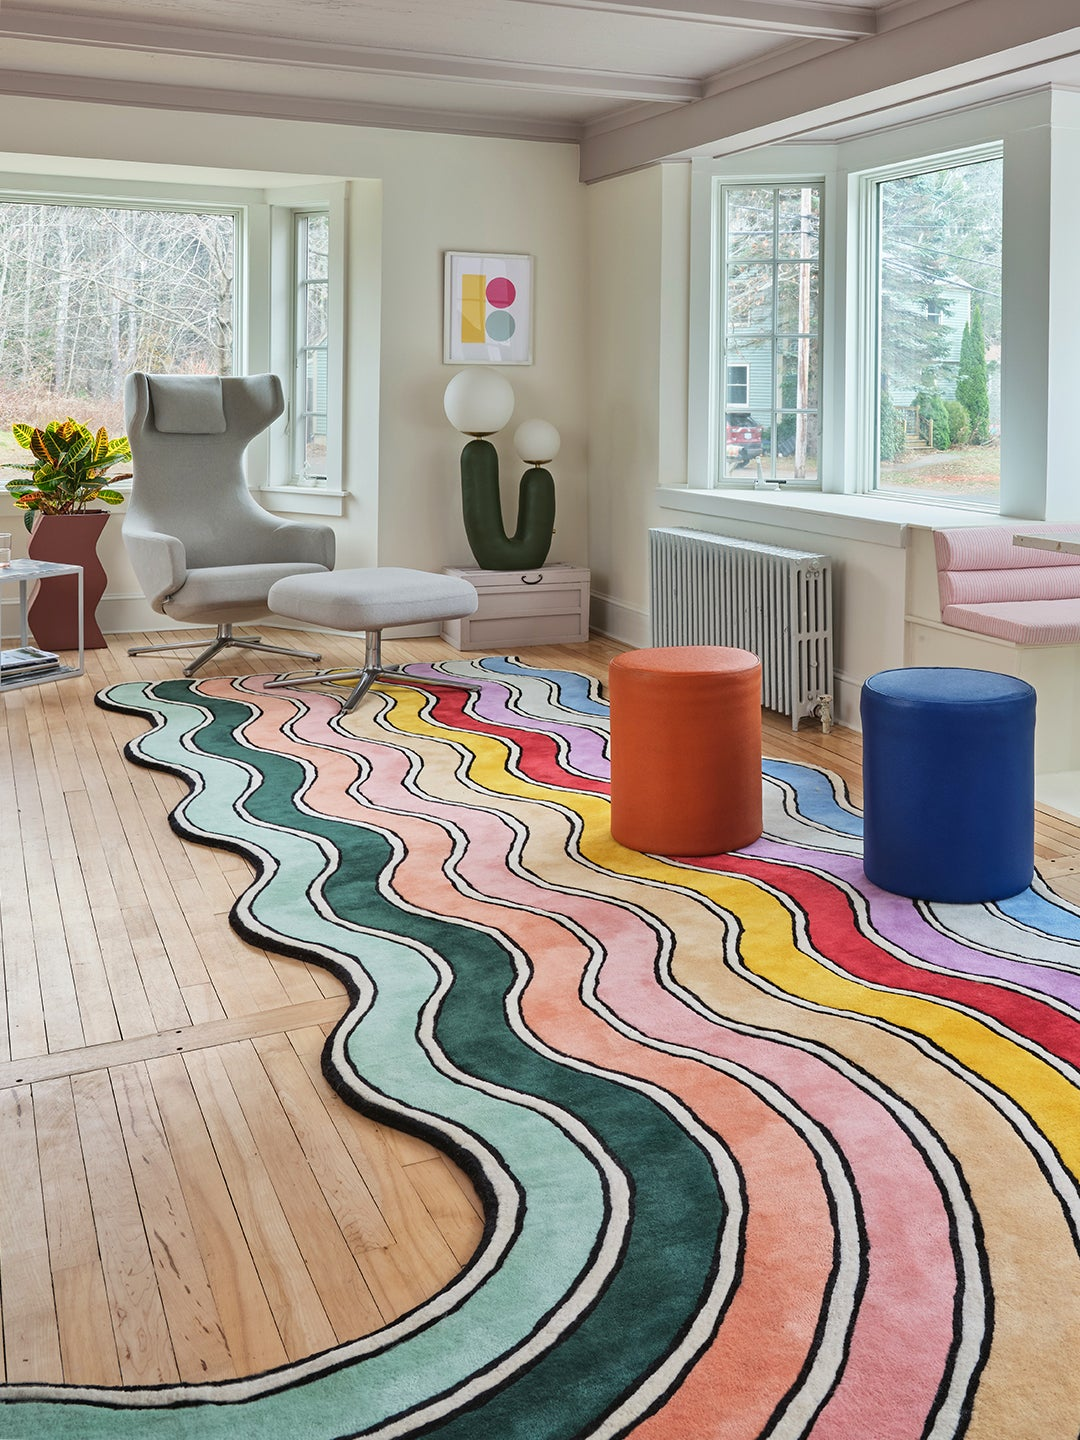 rainbow rug and colorful stools